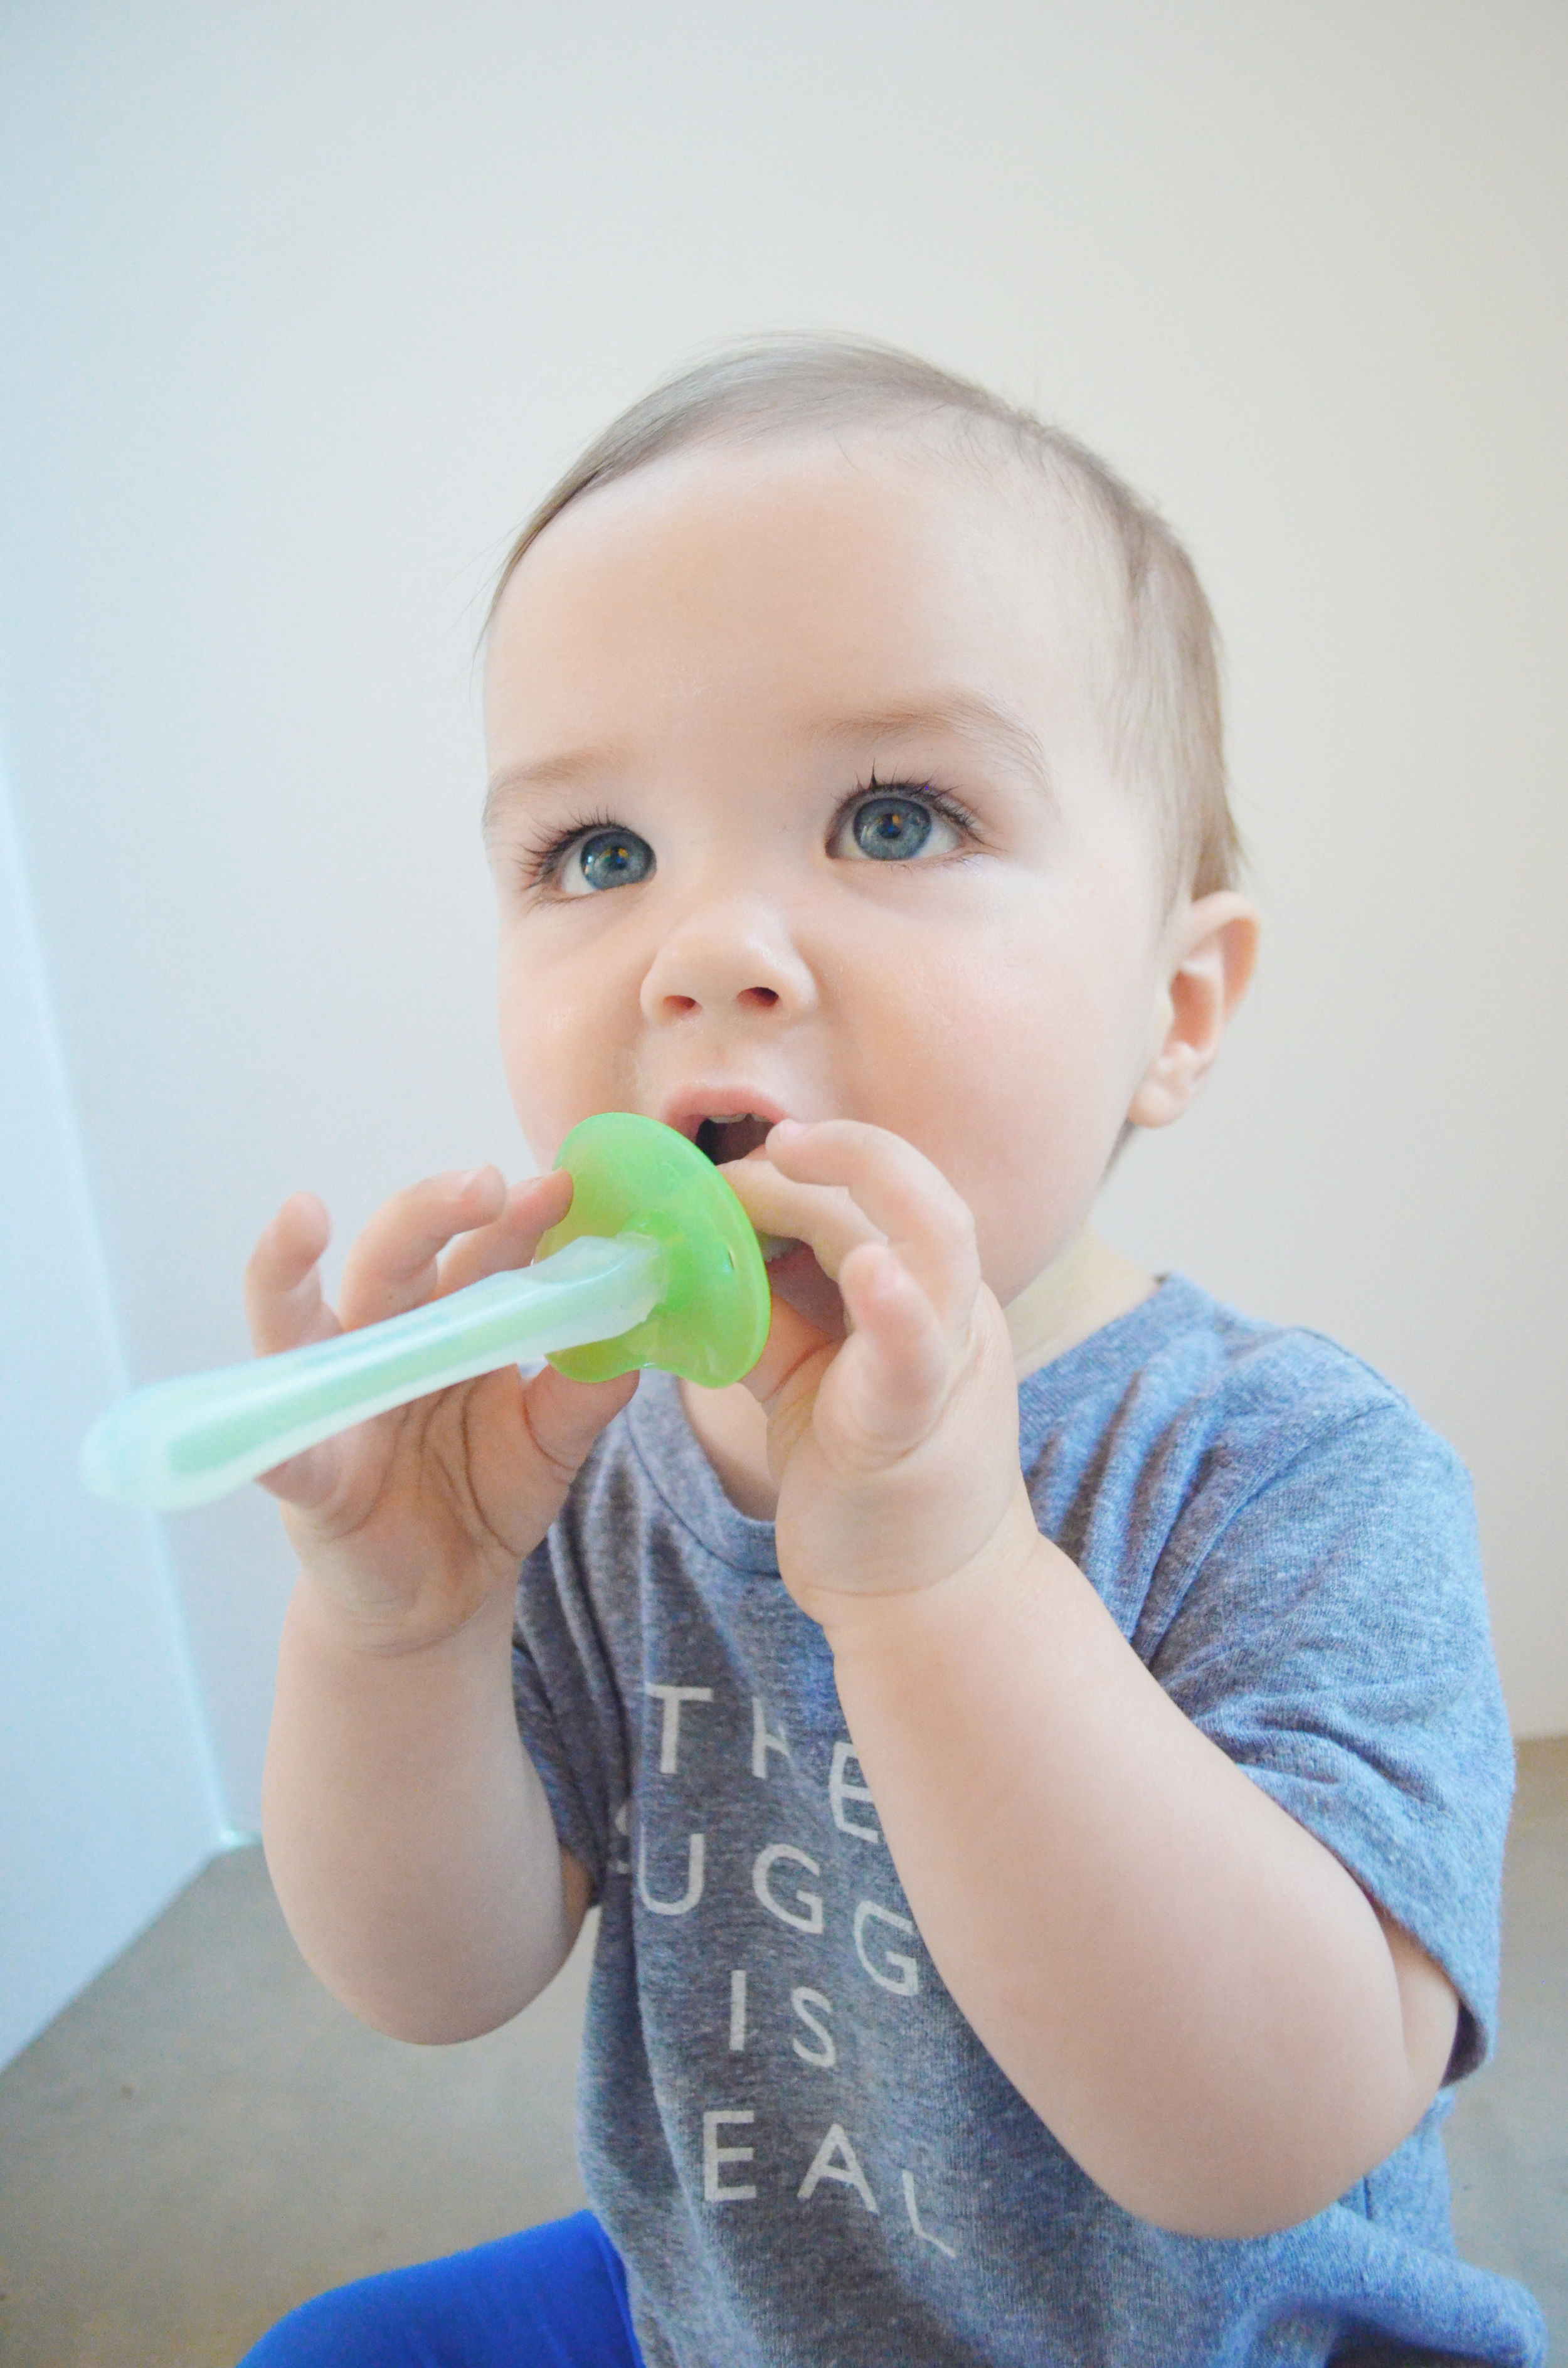 Everything You Wanted To Know About Baby Dental Care | Momma Society-The Community of Modern Moms | www.MommaSociety.com